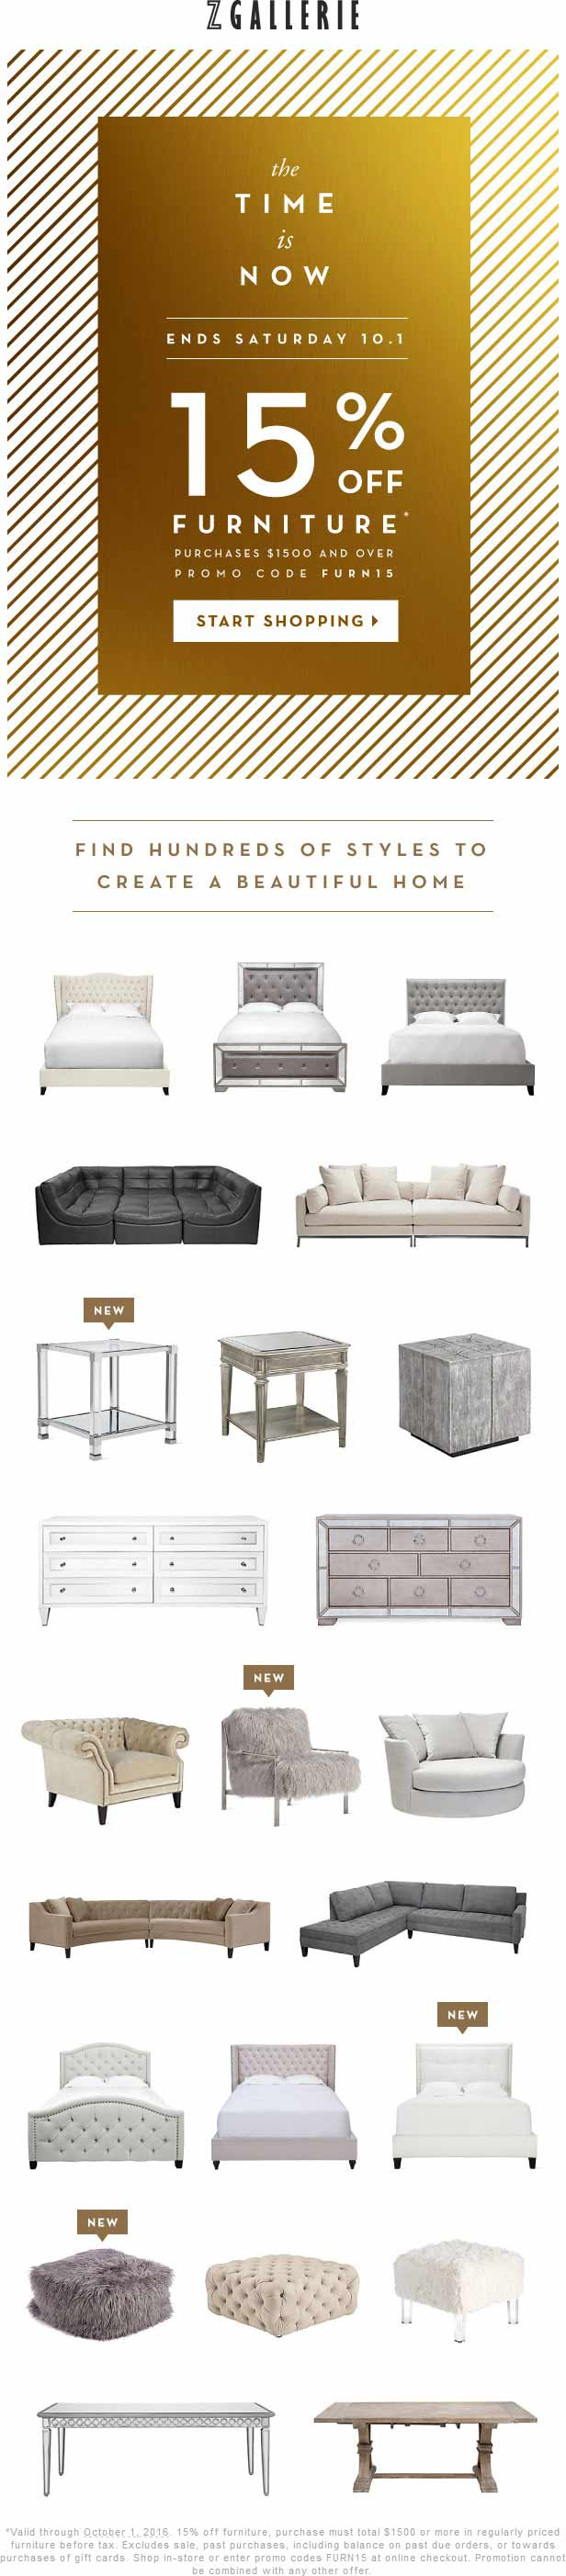 Z Gallerie Coupon December 2016 15% off $1500 on furniture at Z Gallerie, or online via promo code FURN15